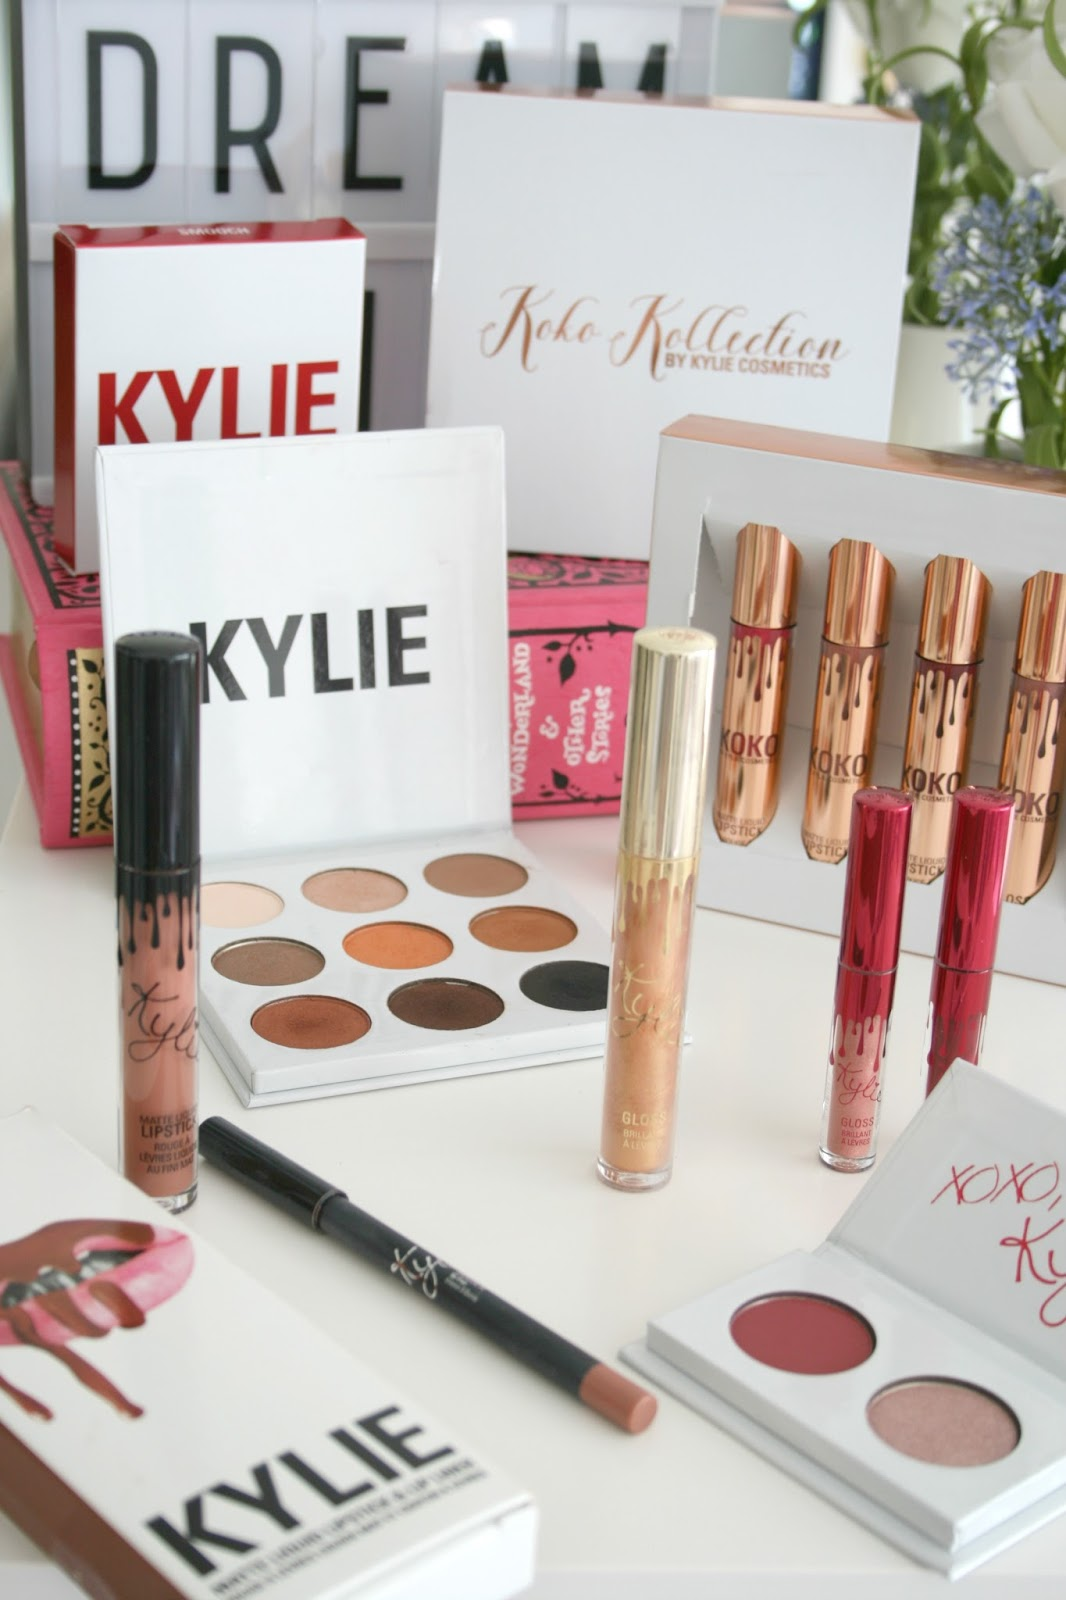 Kylie Cosmetics Fan Counts Down to Restock with Pregnancy